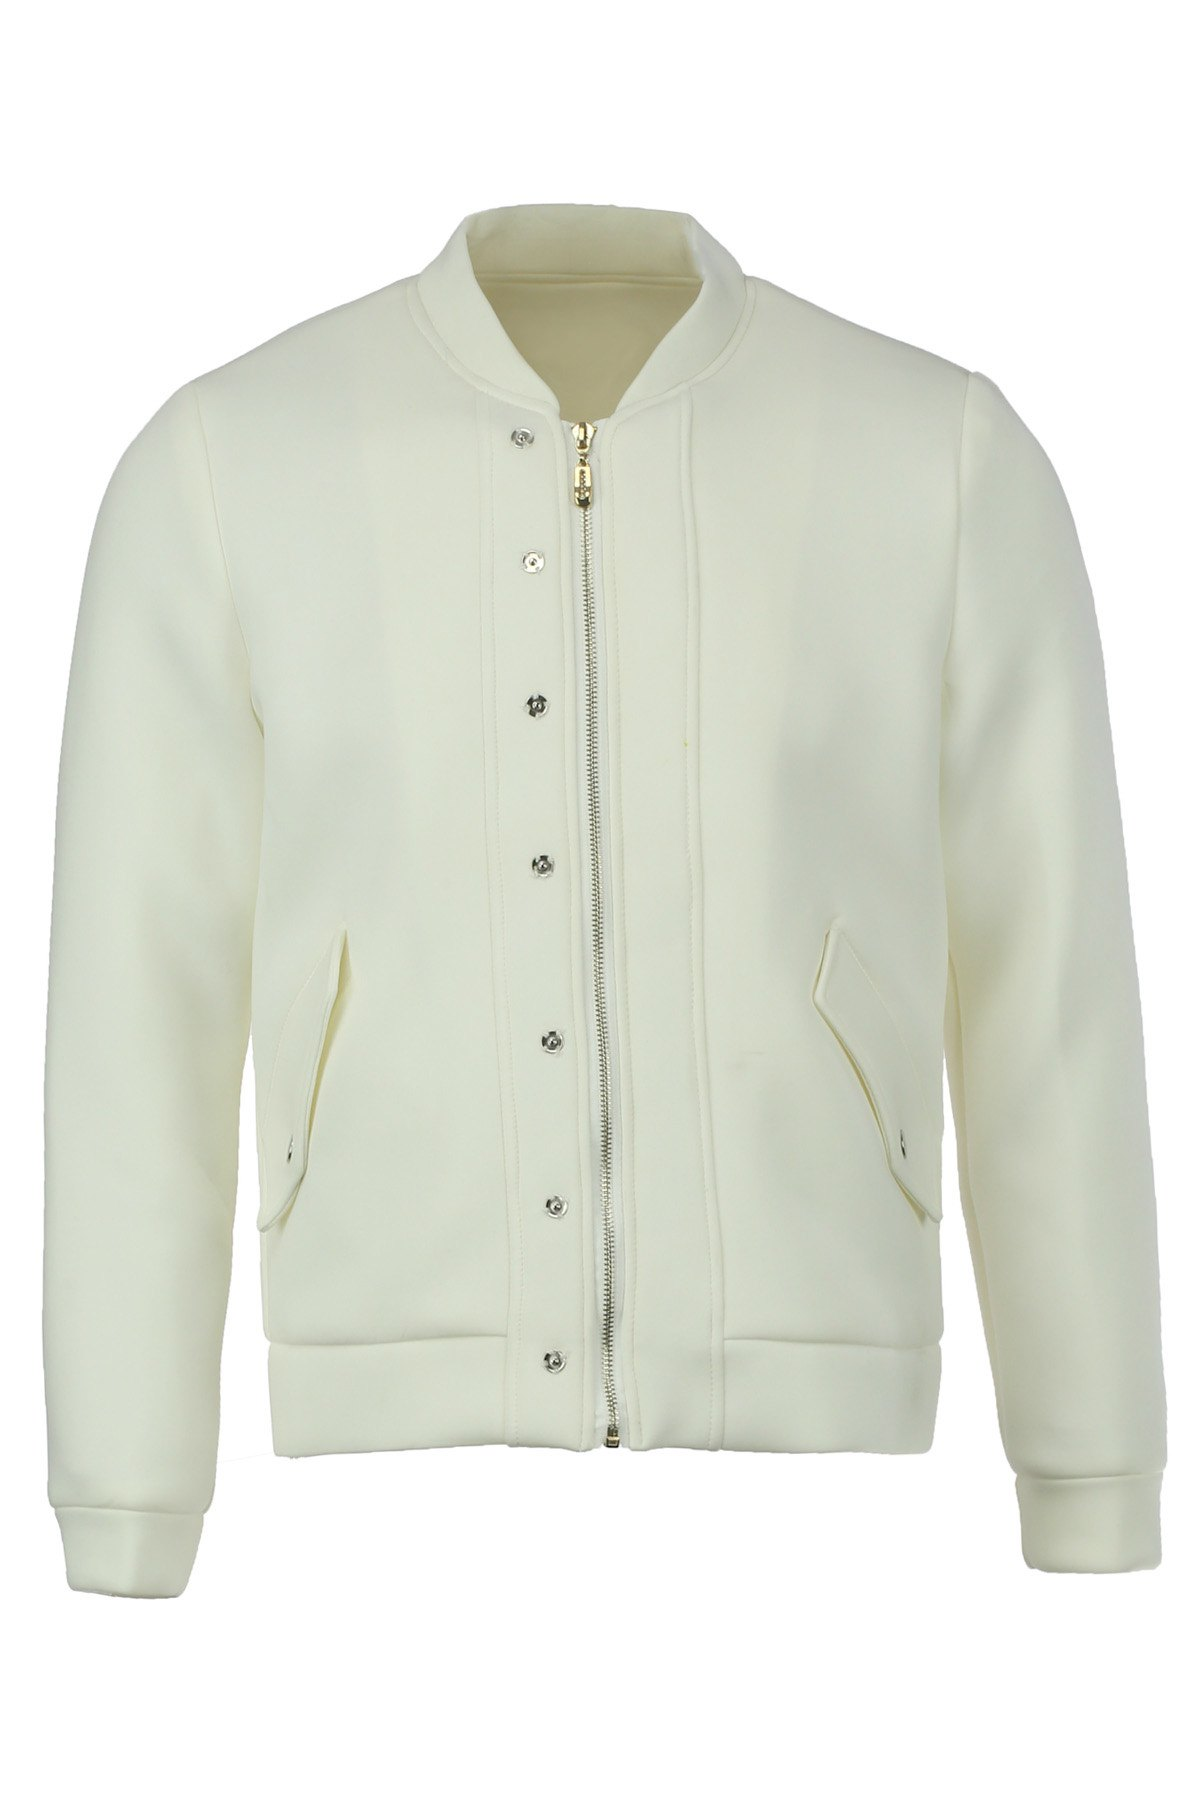 Simple Style Solid Color Stand Collar Slimming Button Embellished Long Sleeves Men's Space Cotton Thicken Jacket - WHITE M